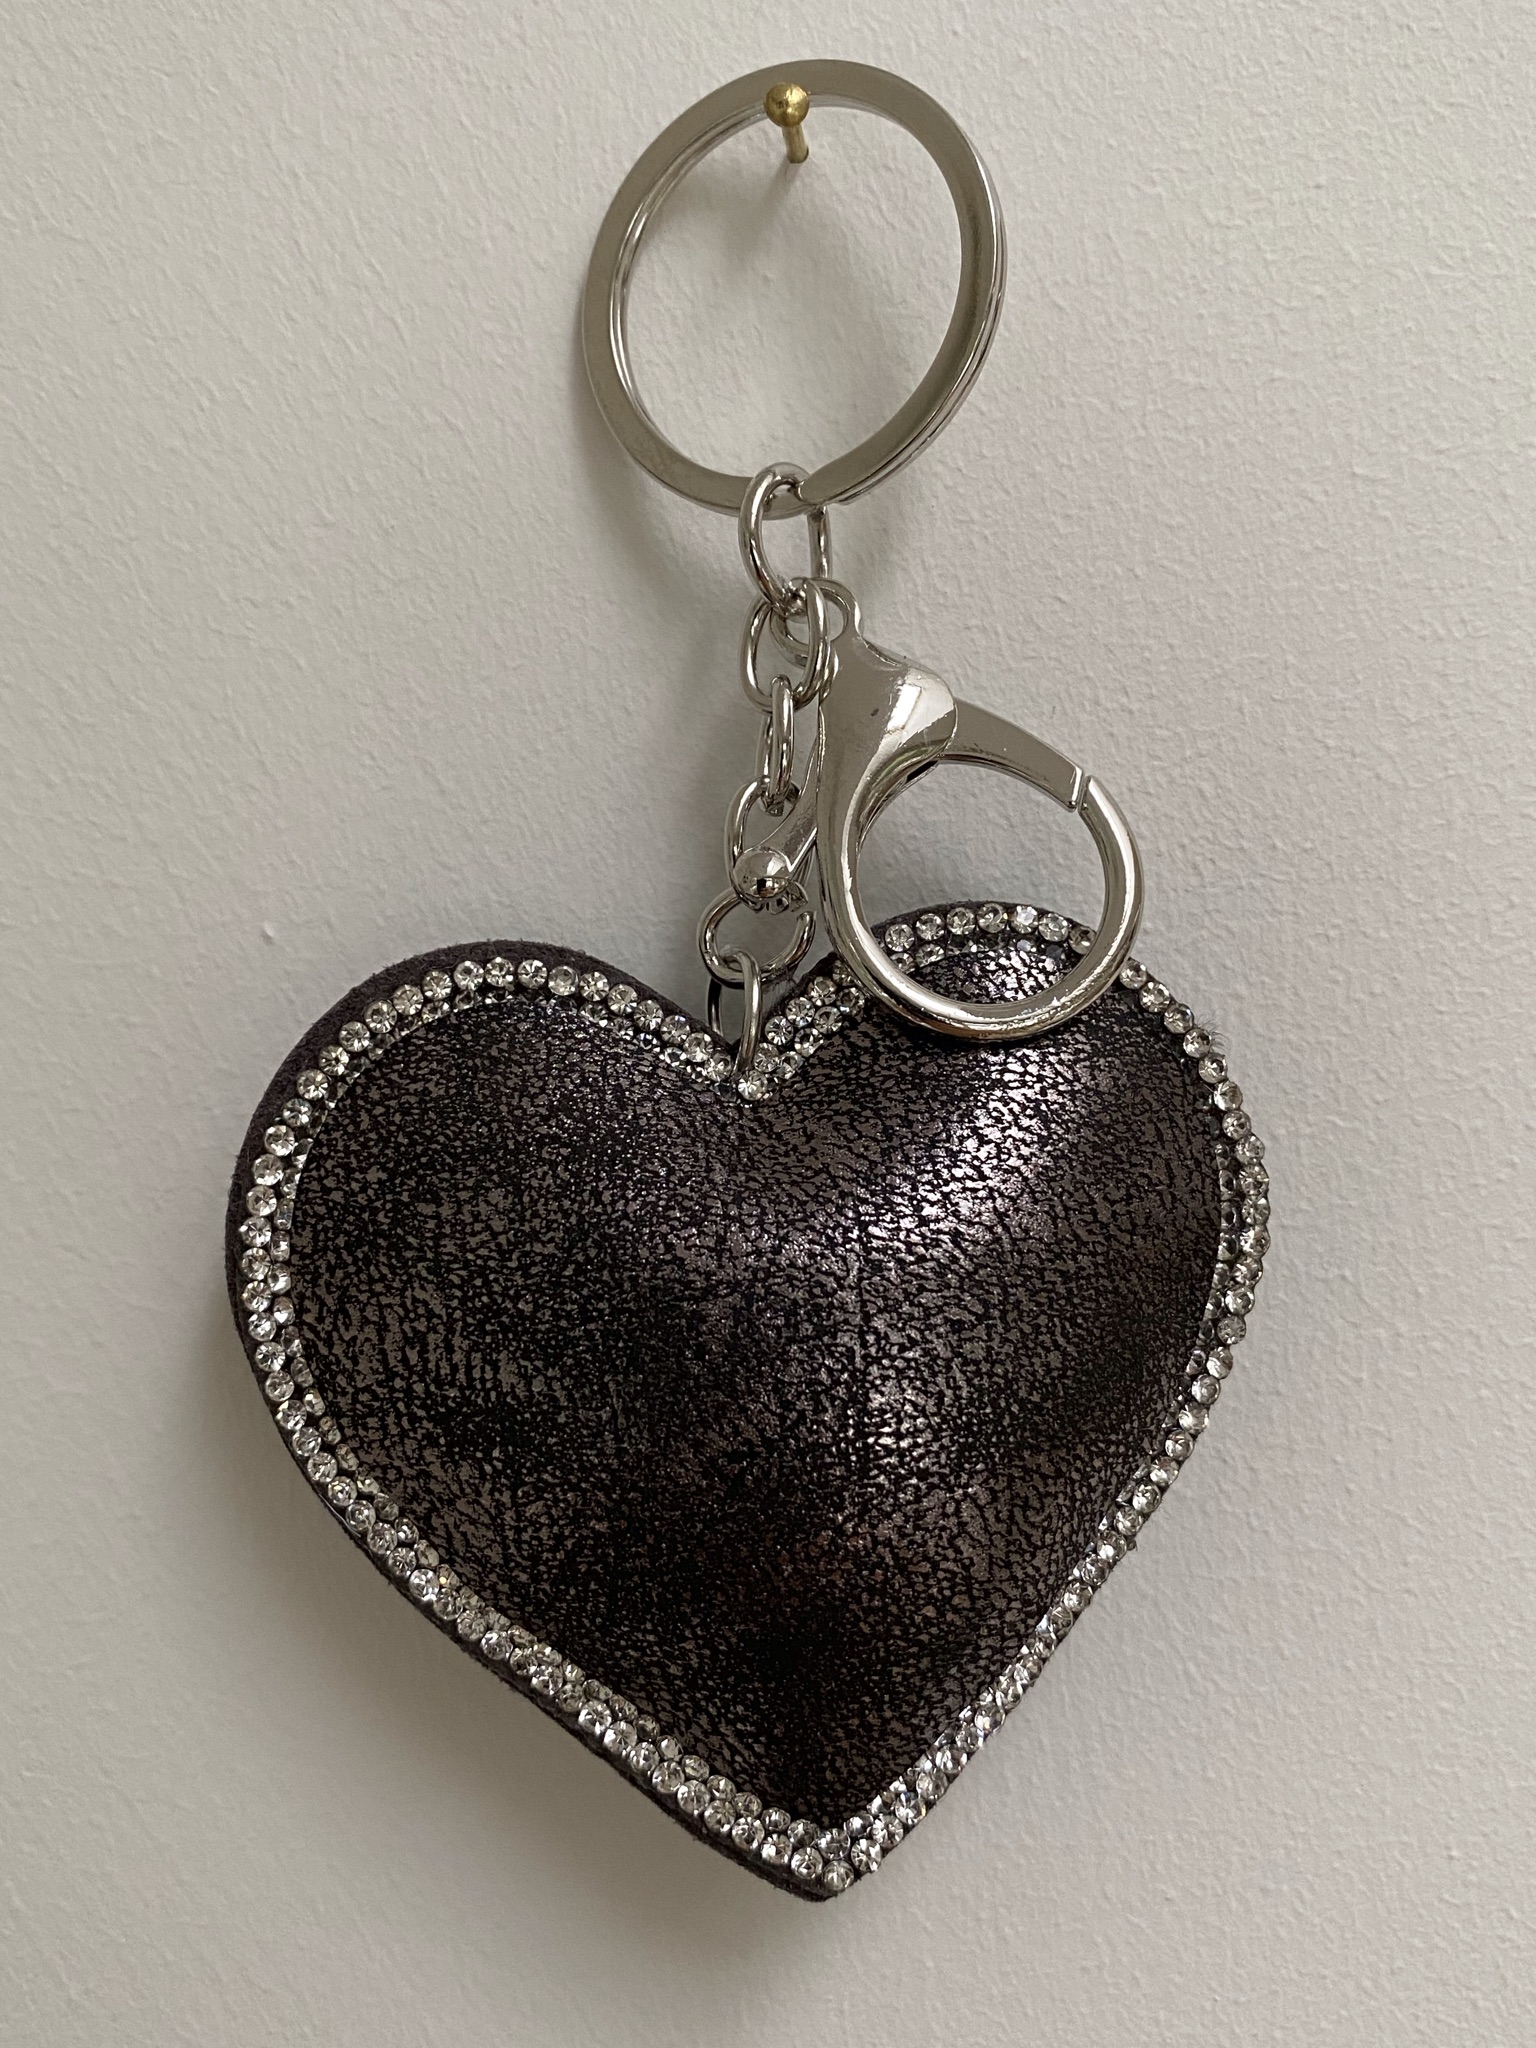 Heart Key Rings - 2 Designs Available